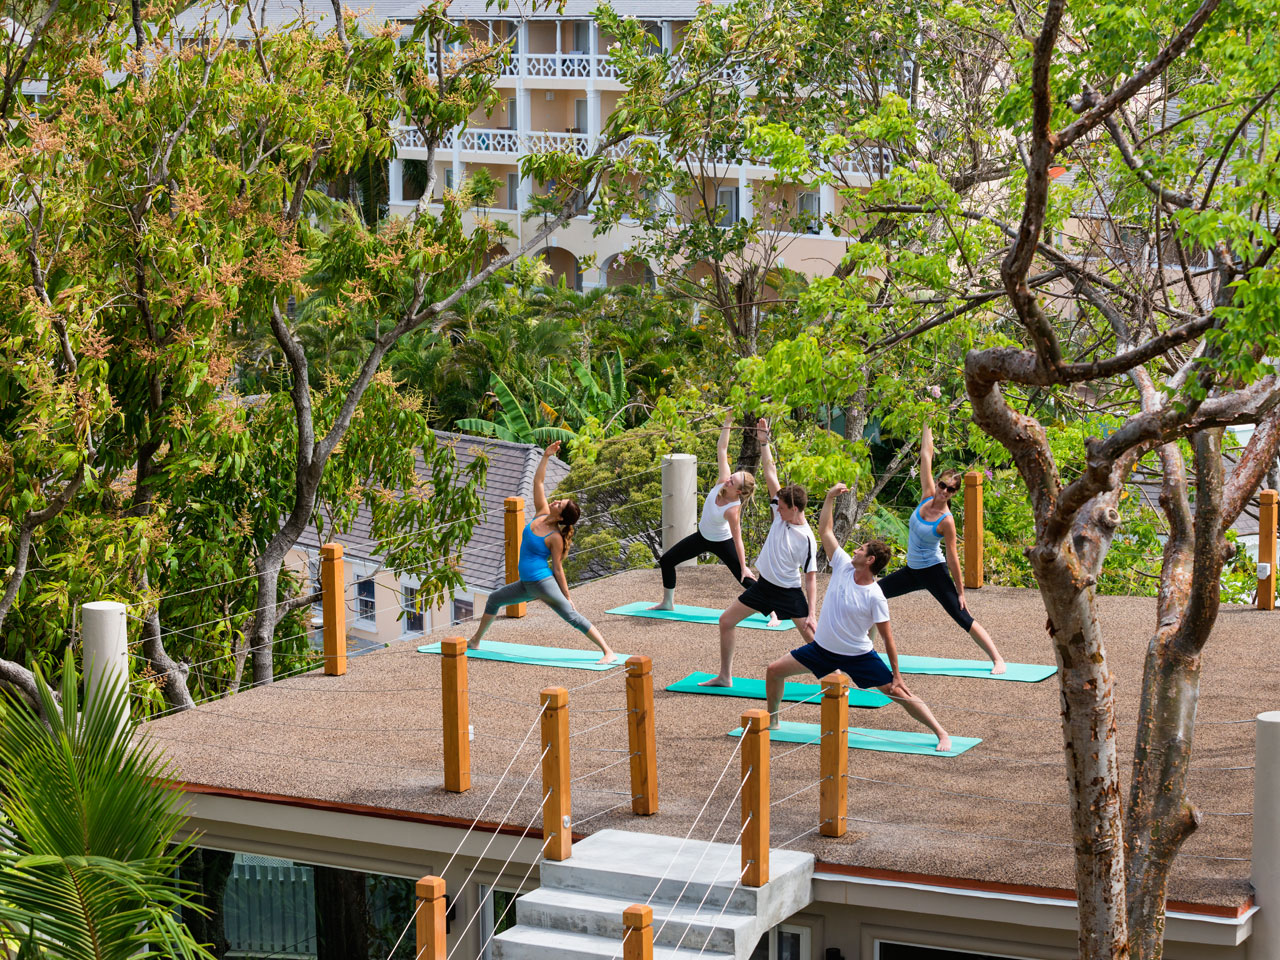 Yoga class at BodyHoliday